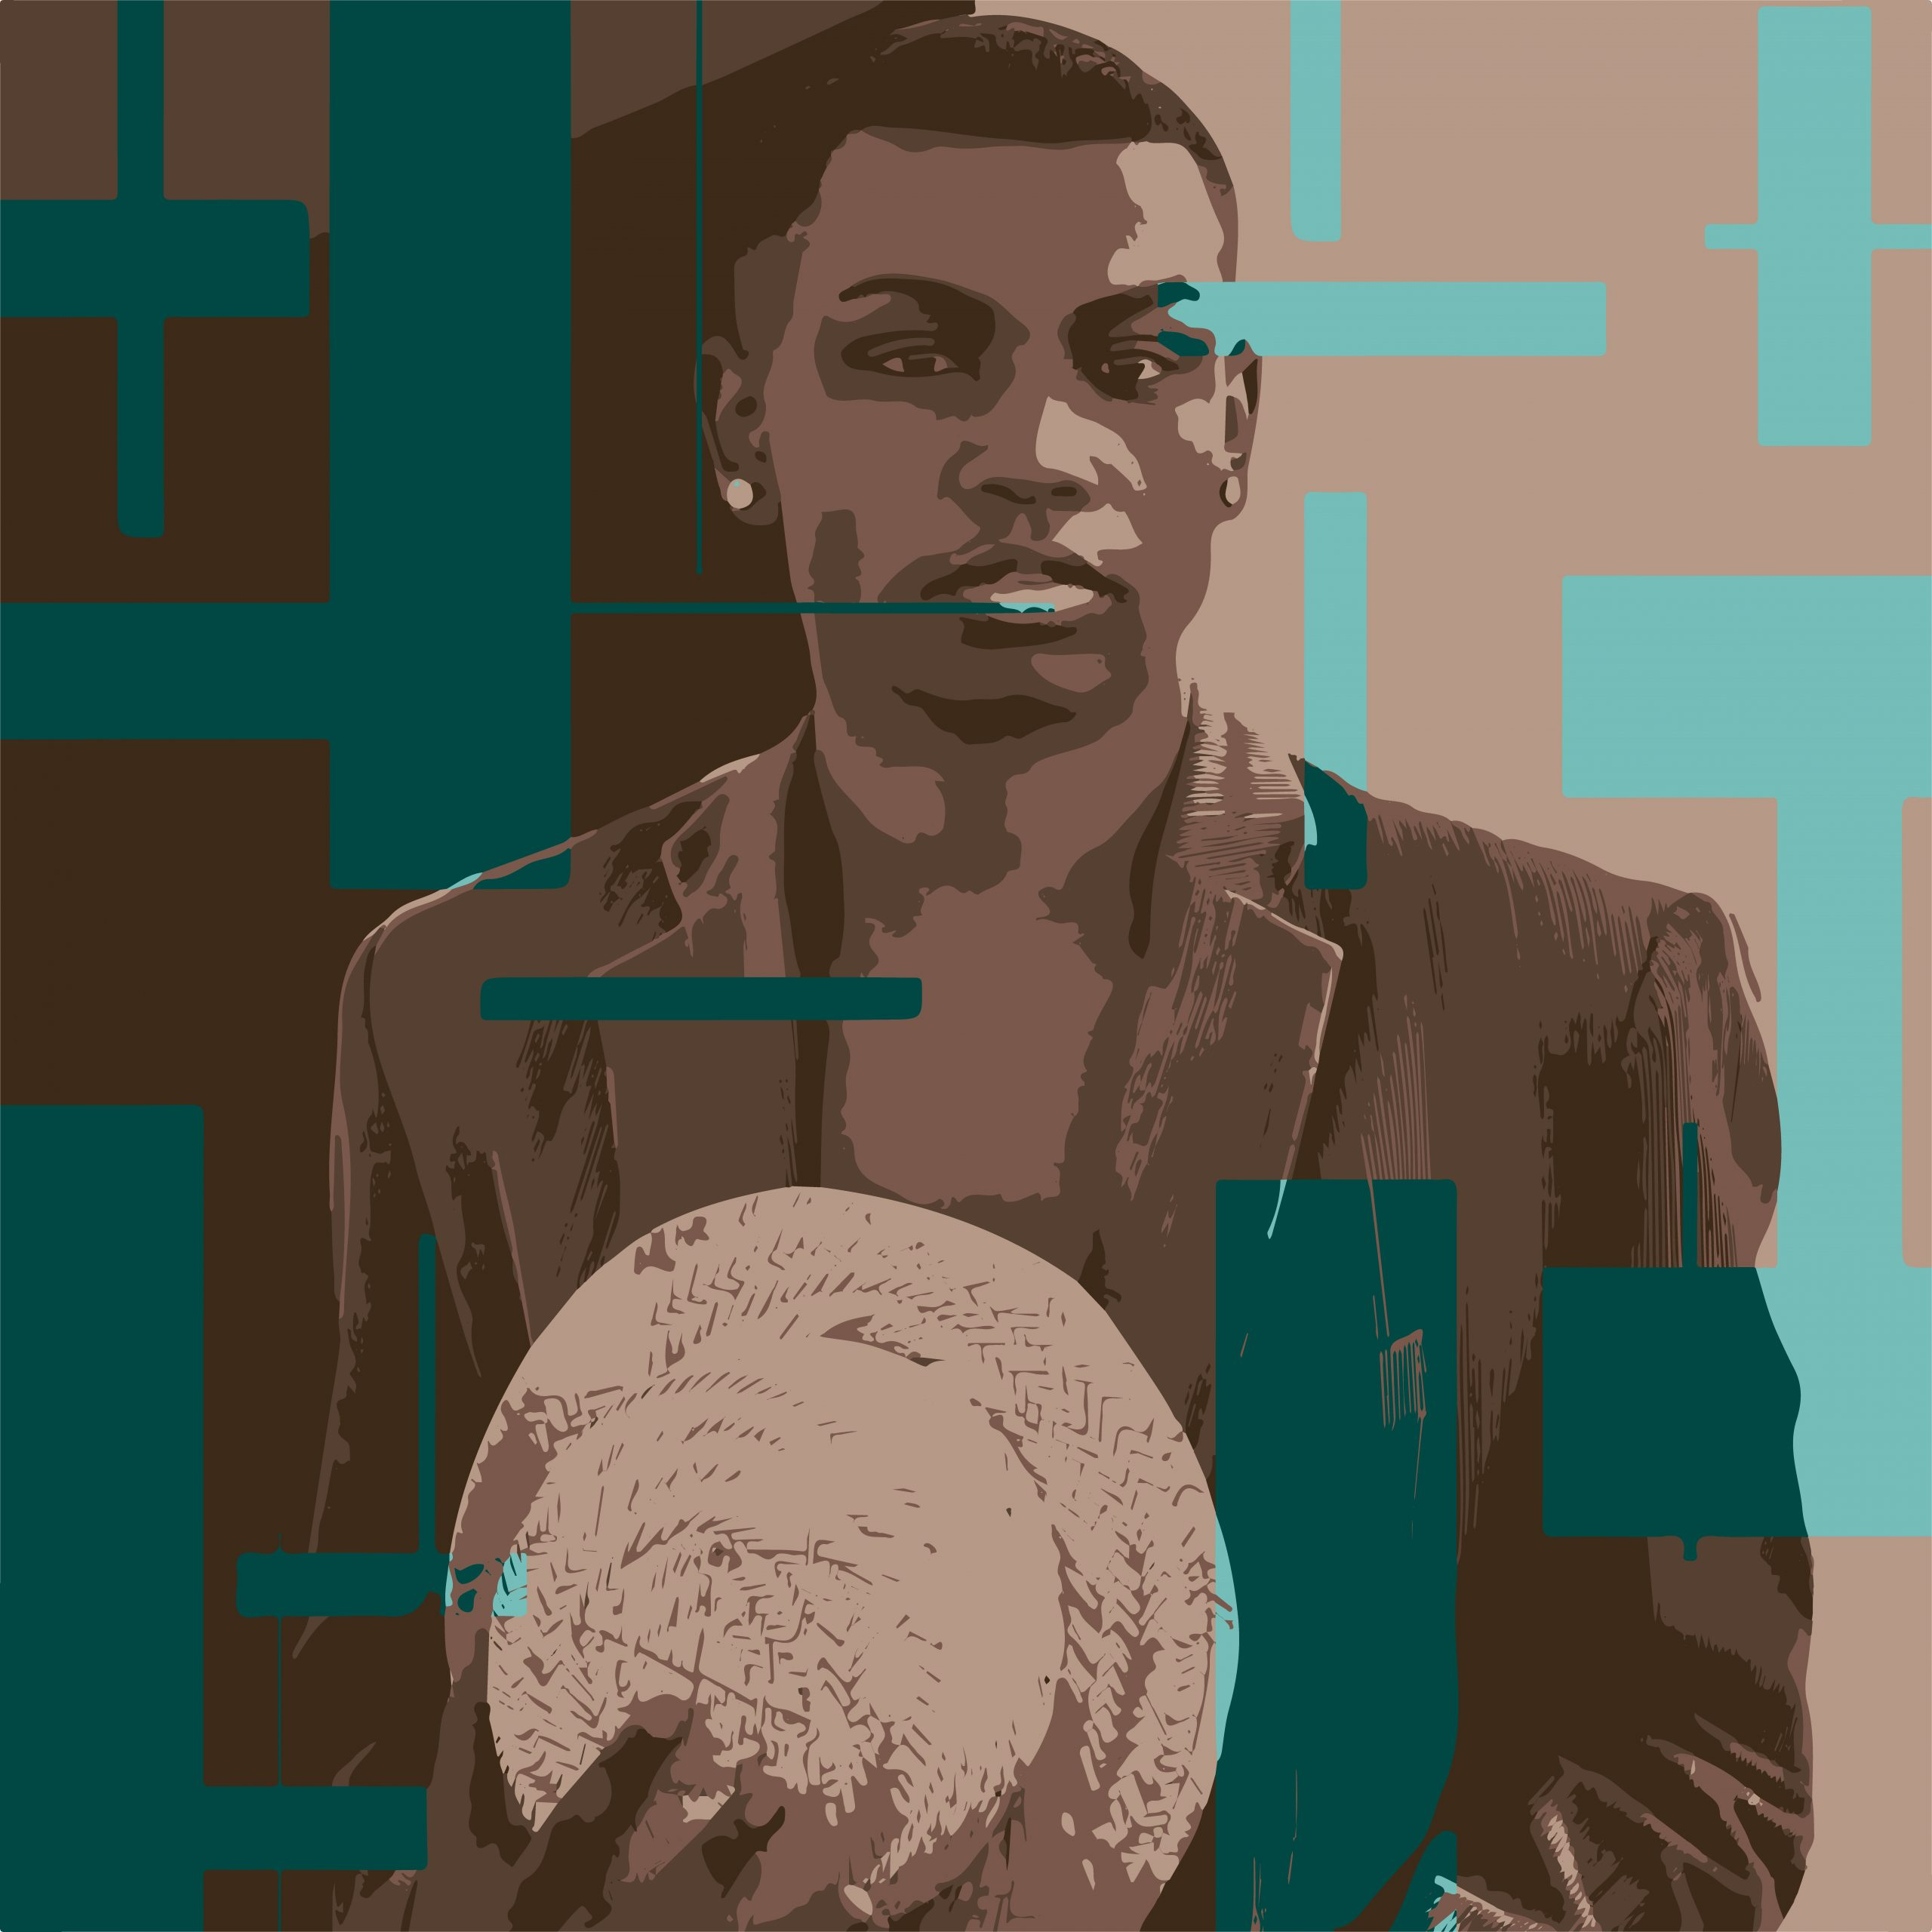 Illustration portrait of an African man